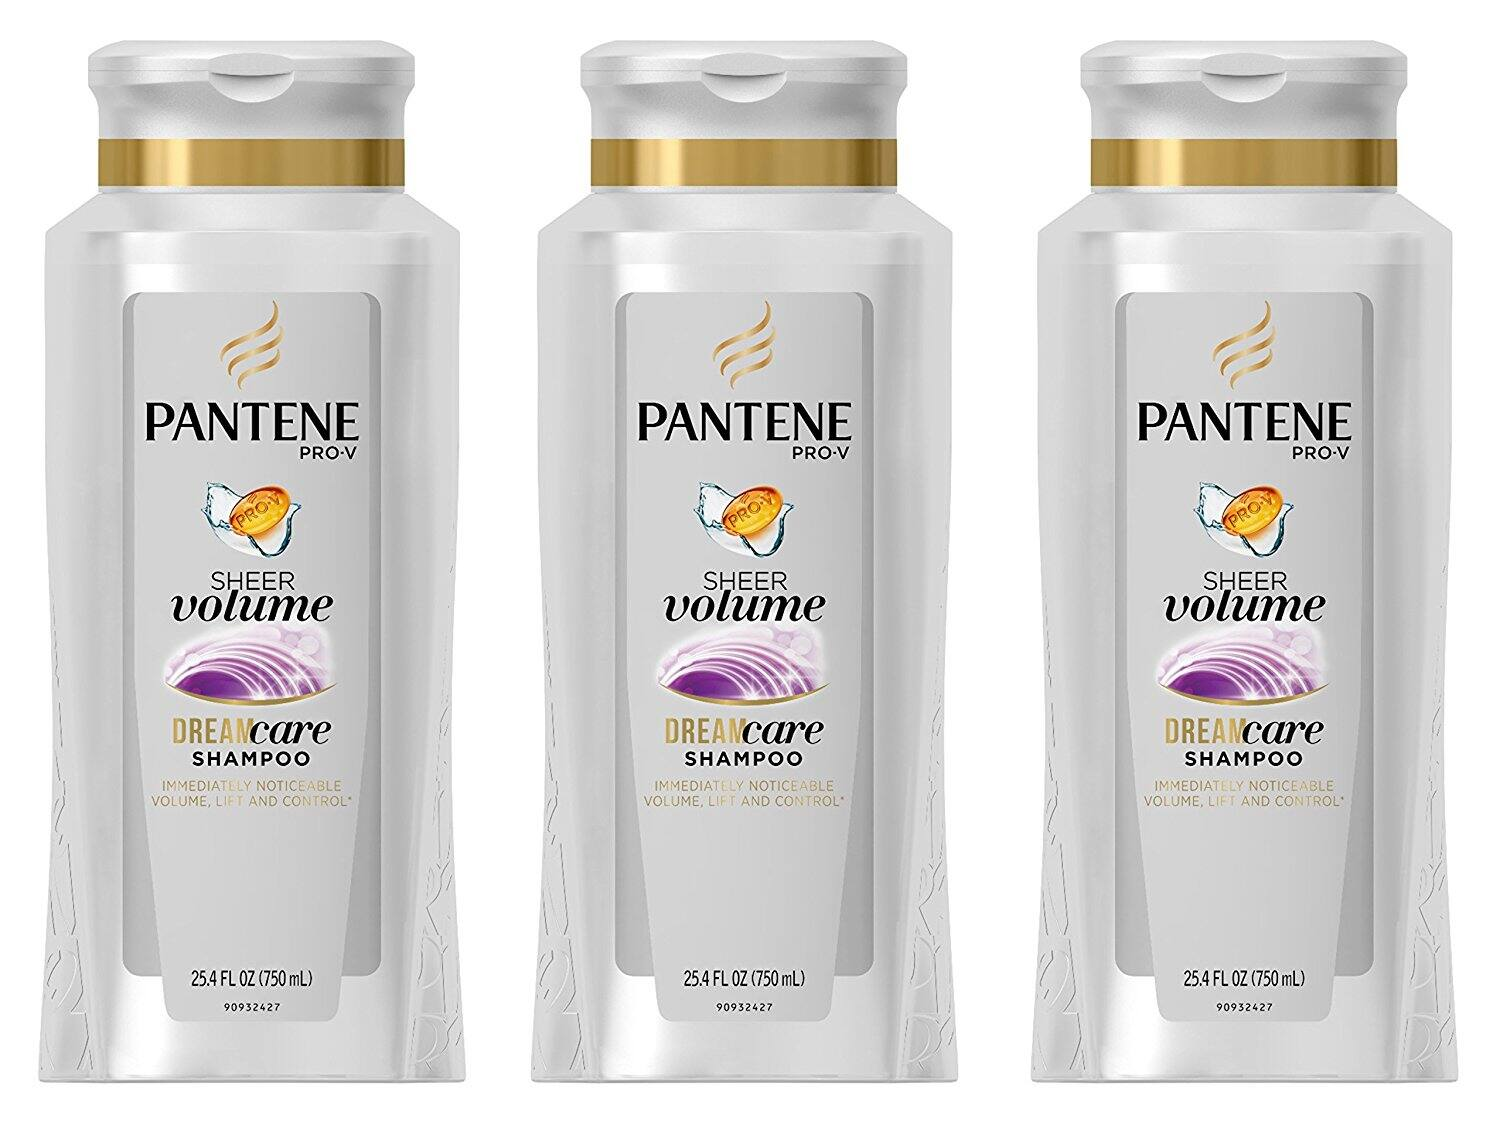 Amazon: PANTENE PRO-V SHEER VOLUME SHAMPOO, 25.4 FLUID OUNCE (PACK OF 3) ONLY $12.04